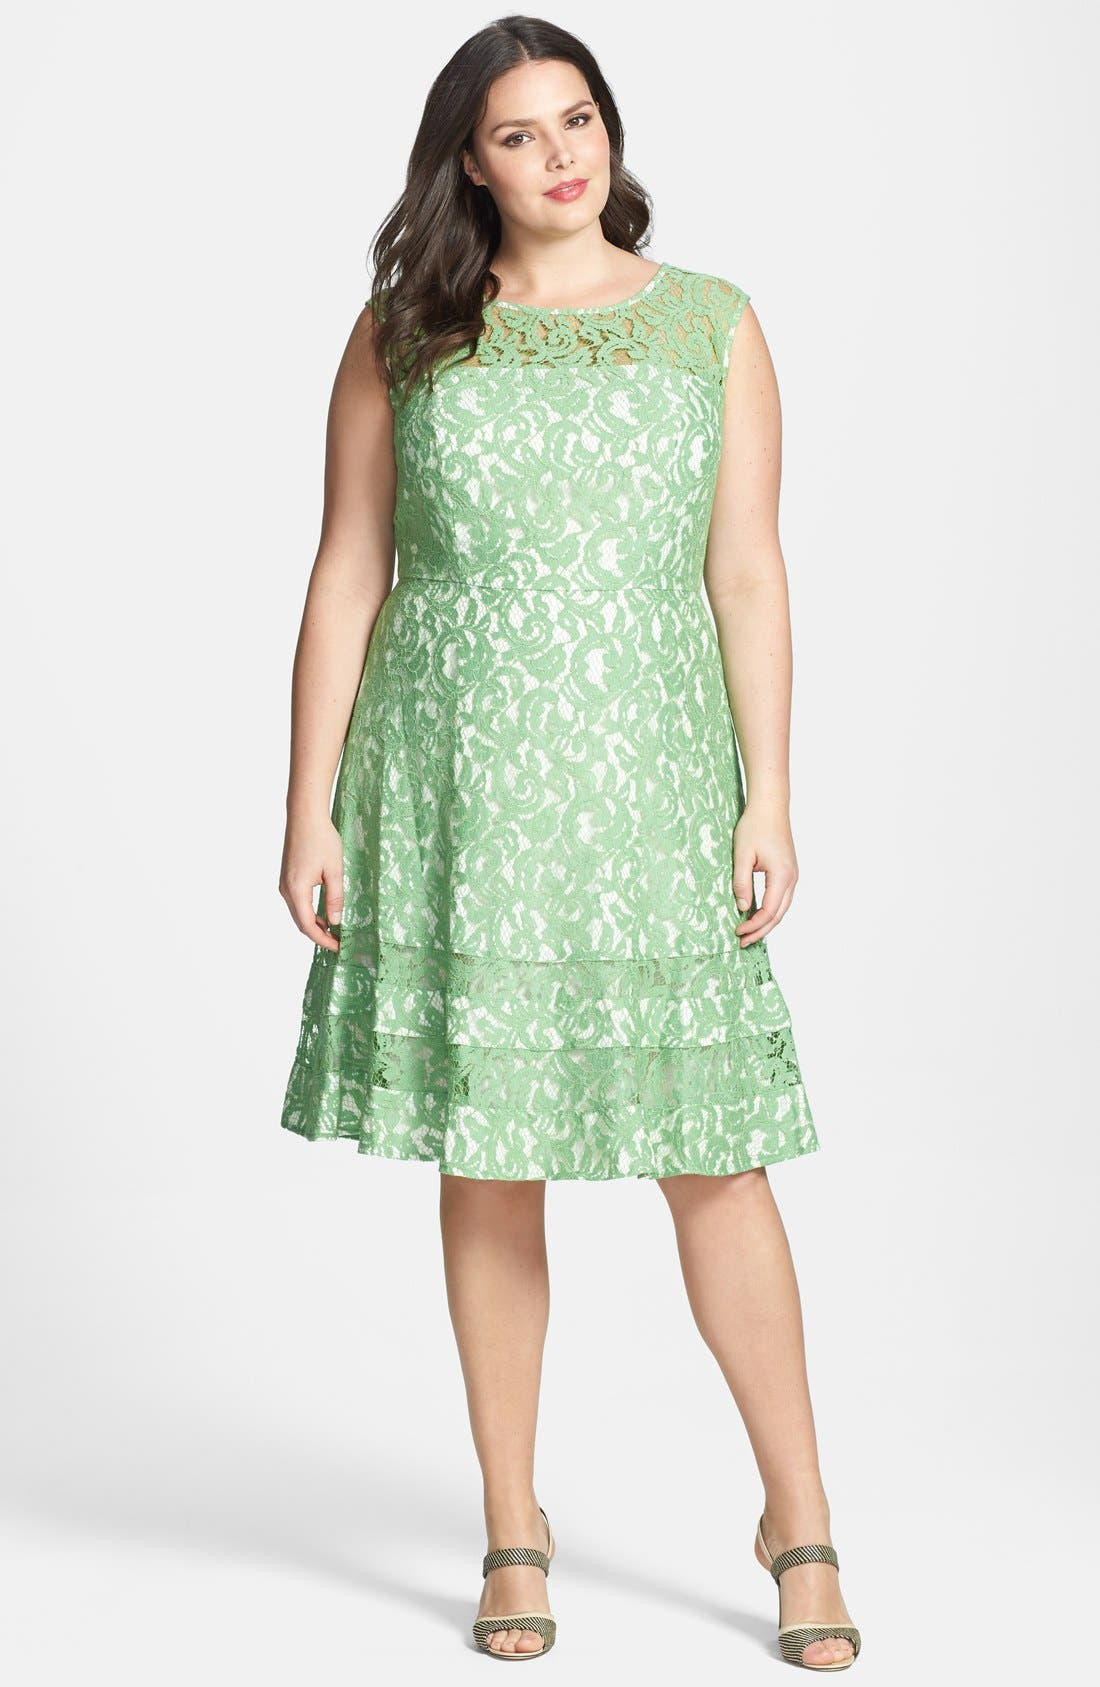 Alternate Image 1 Selected - Adrianna Papell Cutaway Sleeve Lace Shift Dress (Plus Size)